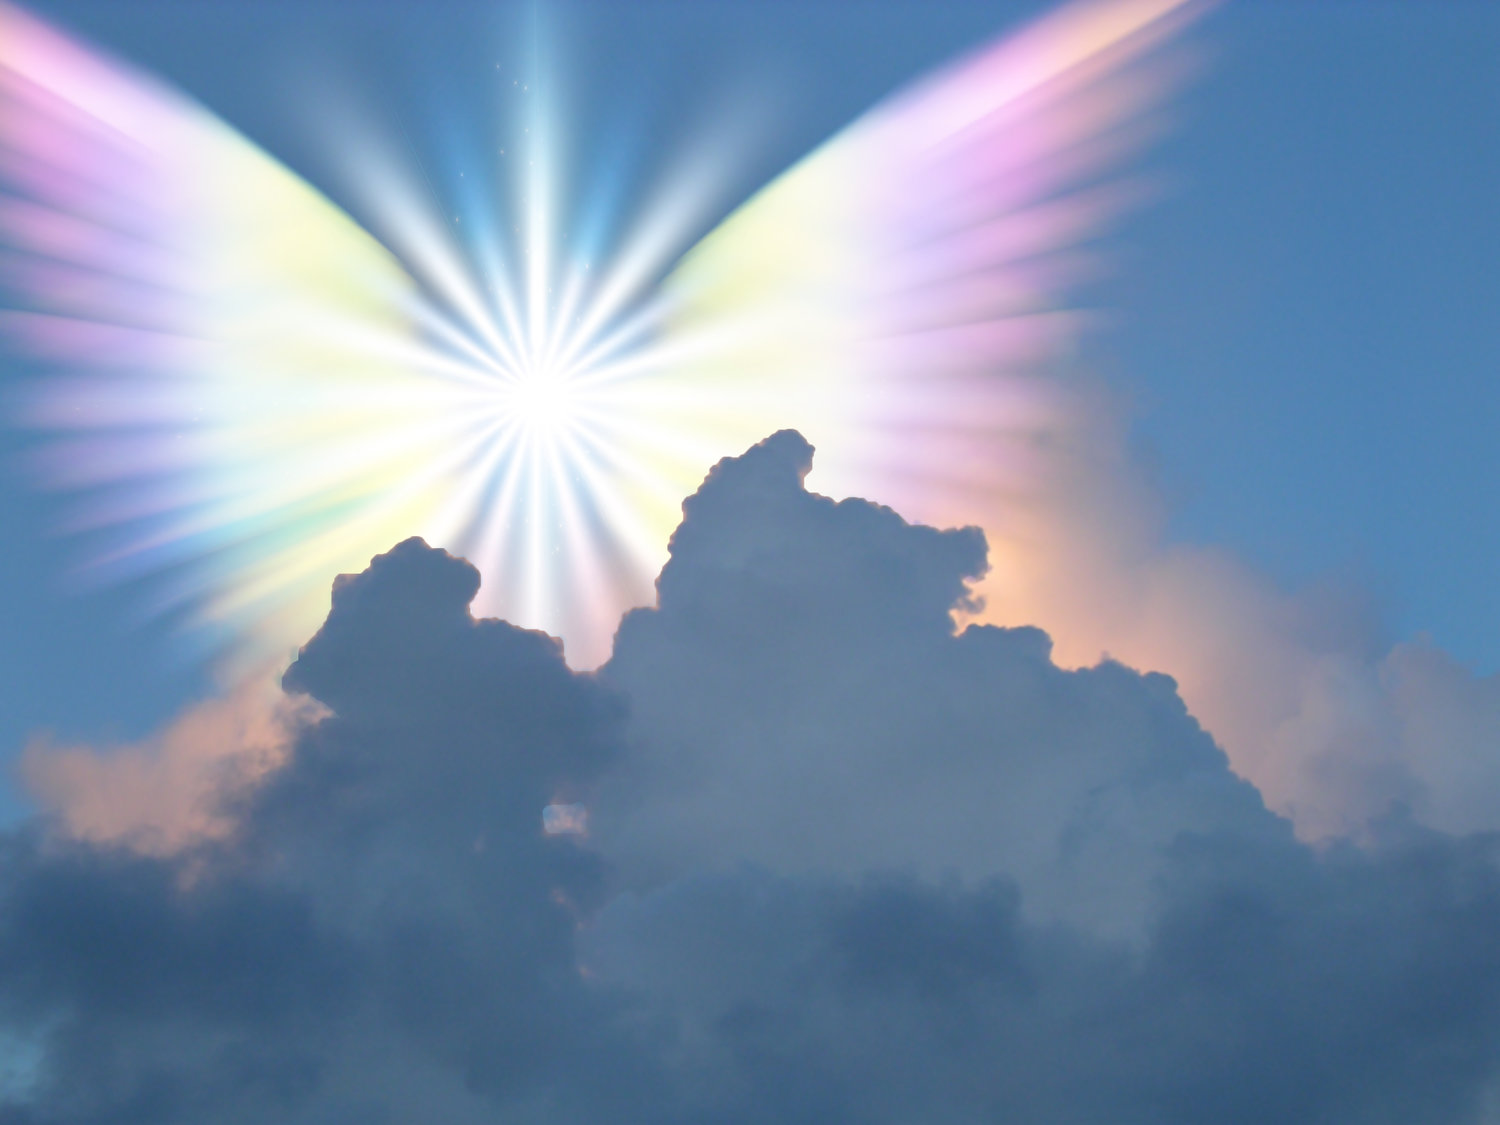 10Mb archangel michael: god's holy protector - 10mb — balanced perceptions-  hypnosis